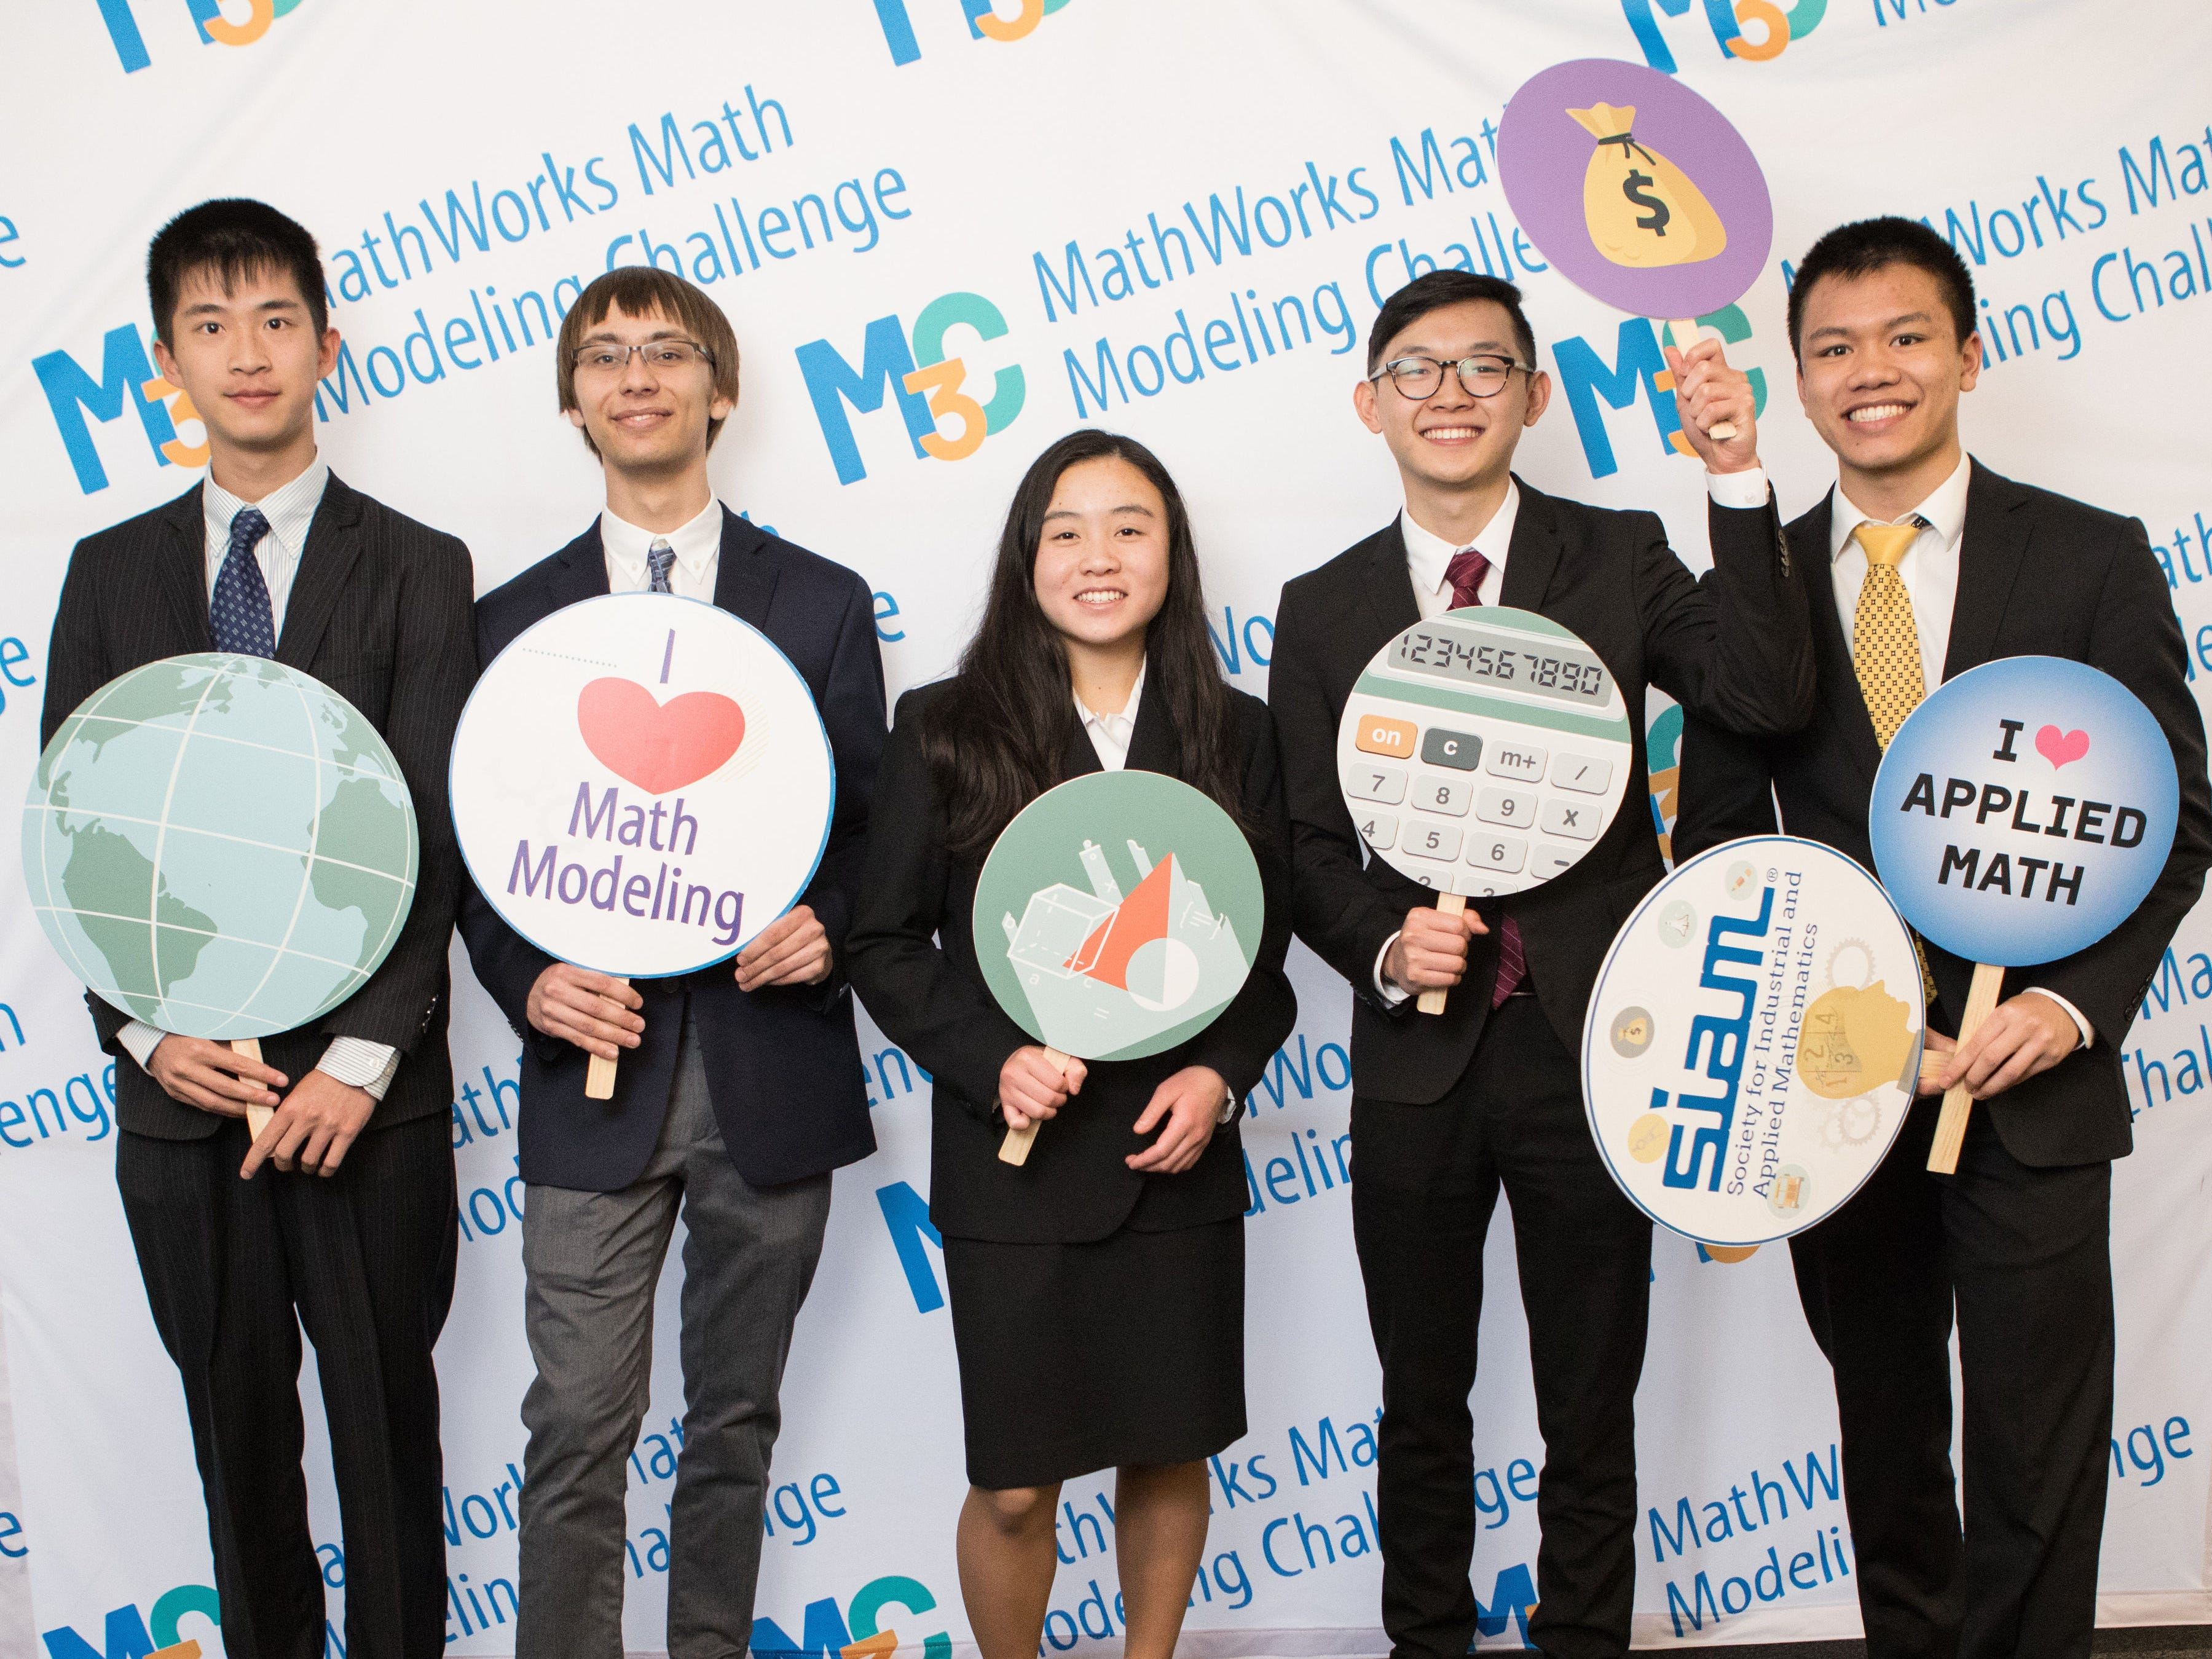 A math team from High Tech High School in Lincroft won the prestigious MathWorks Math Modeling (M3) Challenge, which highlights the role of math in solving real world problems. From left: Jason Yan, Gustav Hansen, Emily Jiang, Eric Chai and Kyle Lui. The team took home the top prize of $20,000 in college scholarships during the final event in New York City on April 29.